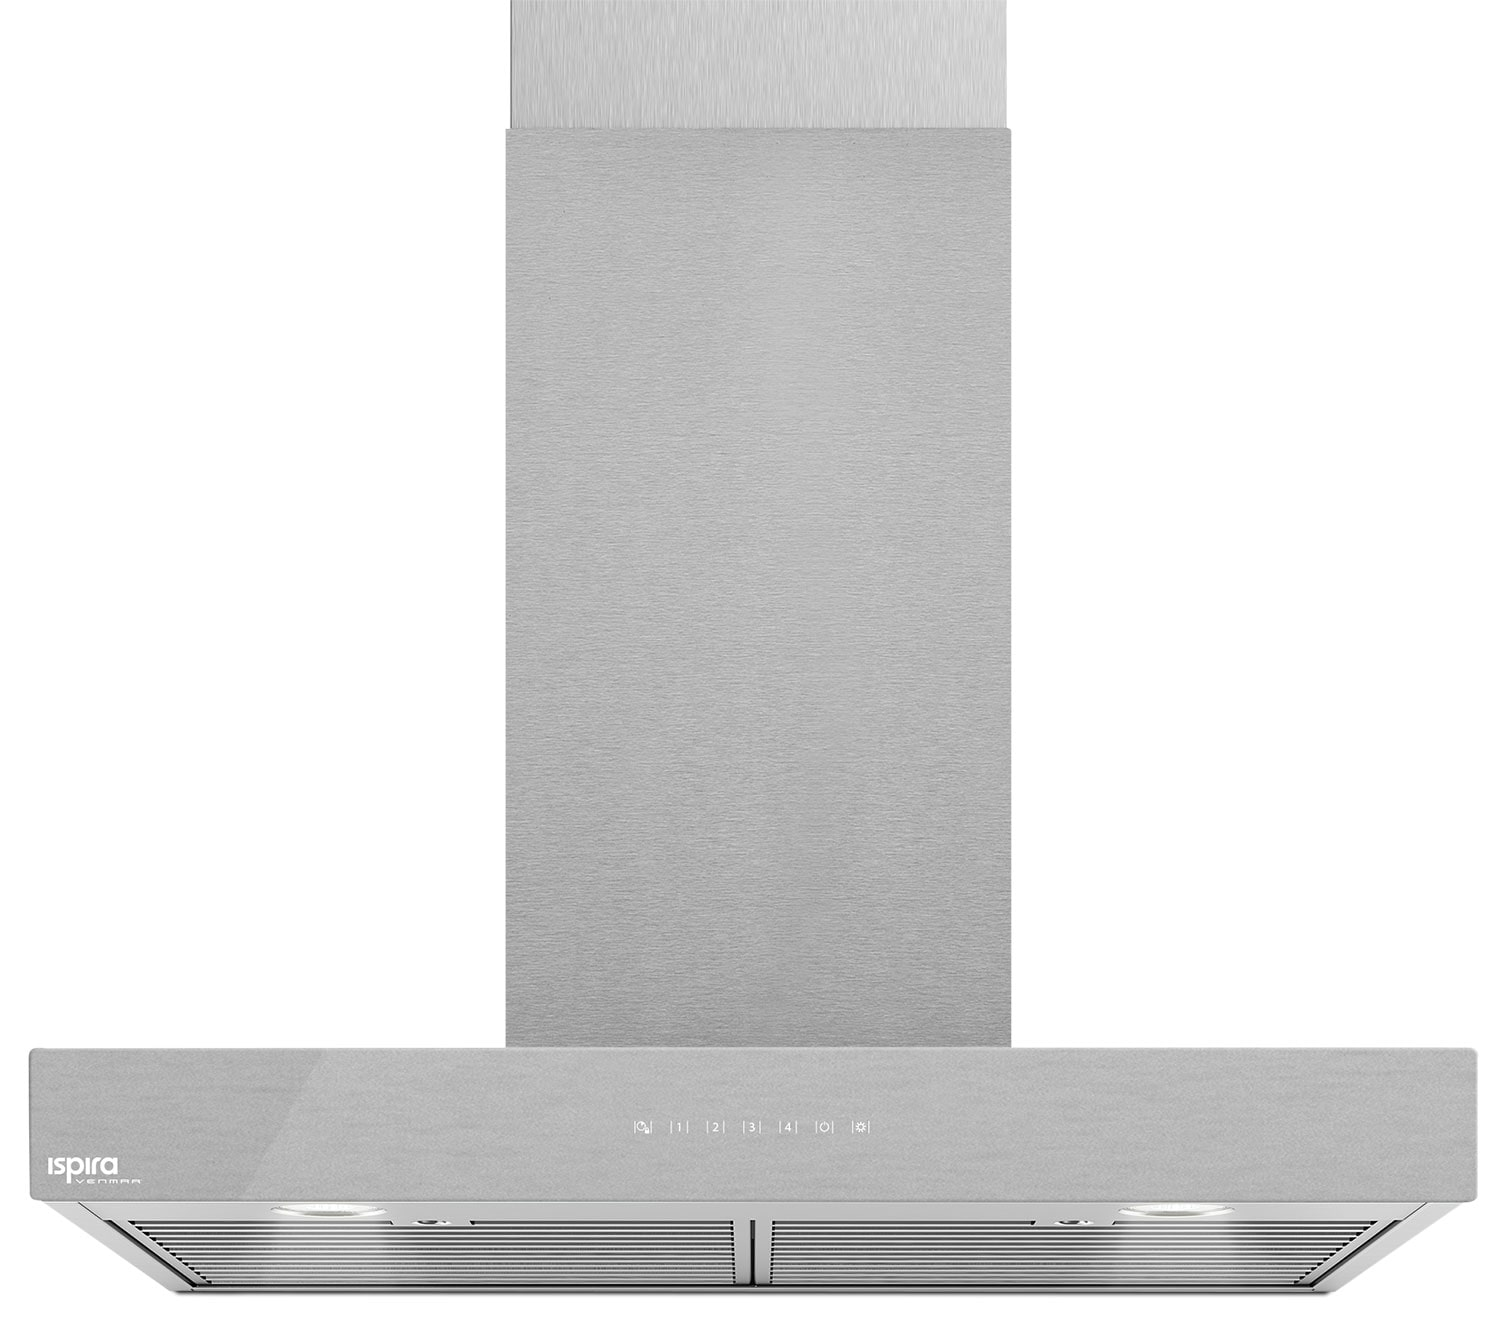 "Venmar Ispira 30"" Chimney Range Hood – Brushed Grey Panel IC70030SS"